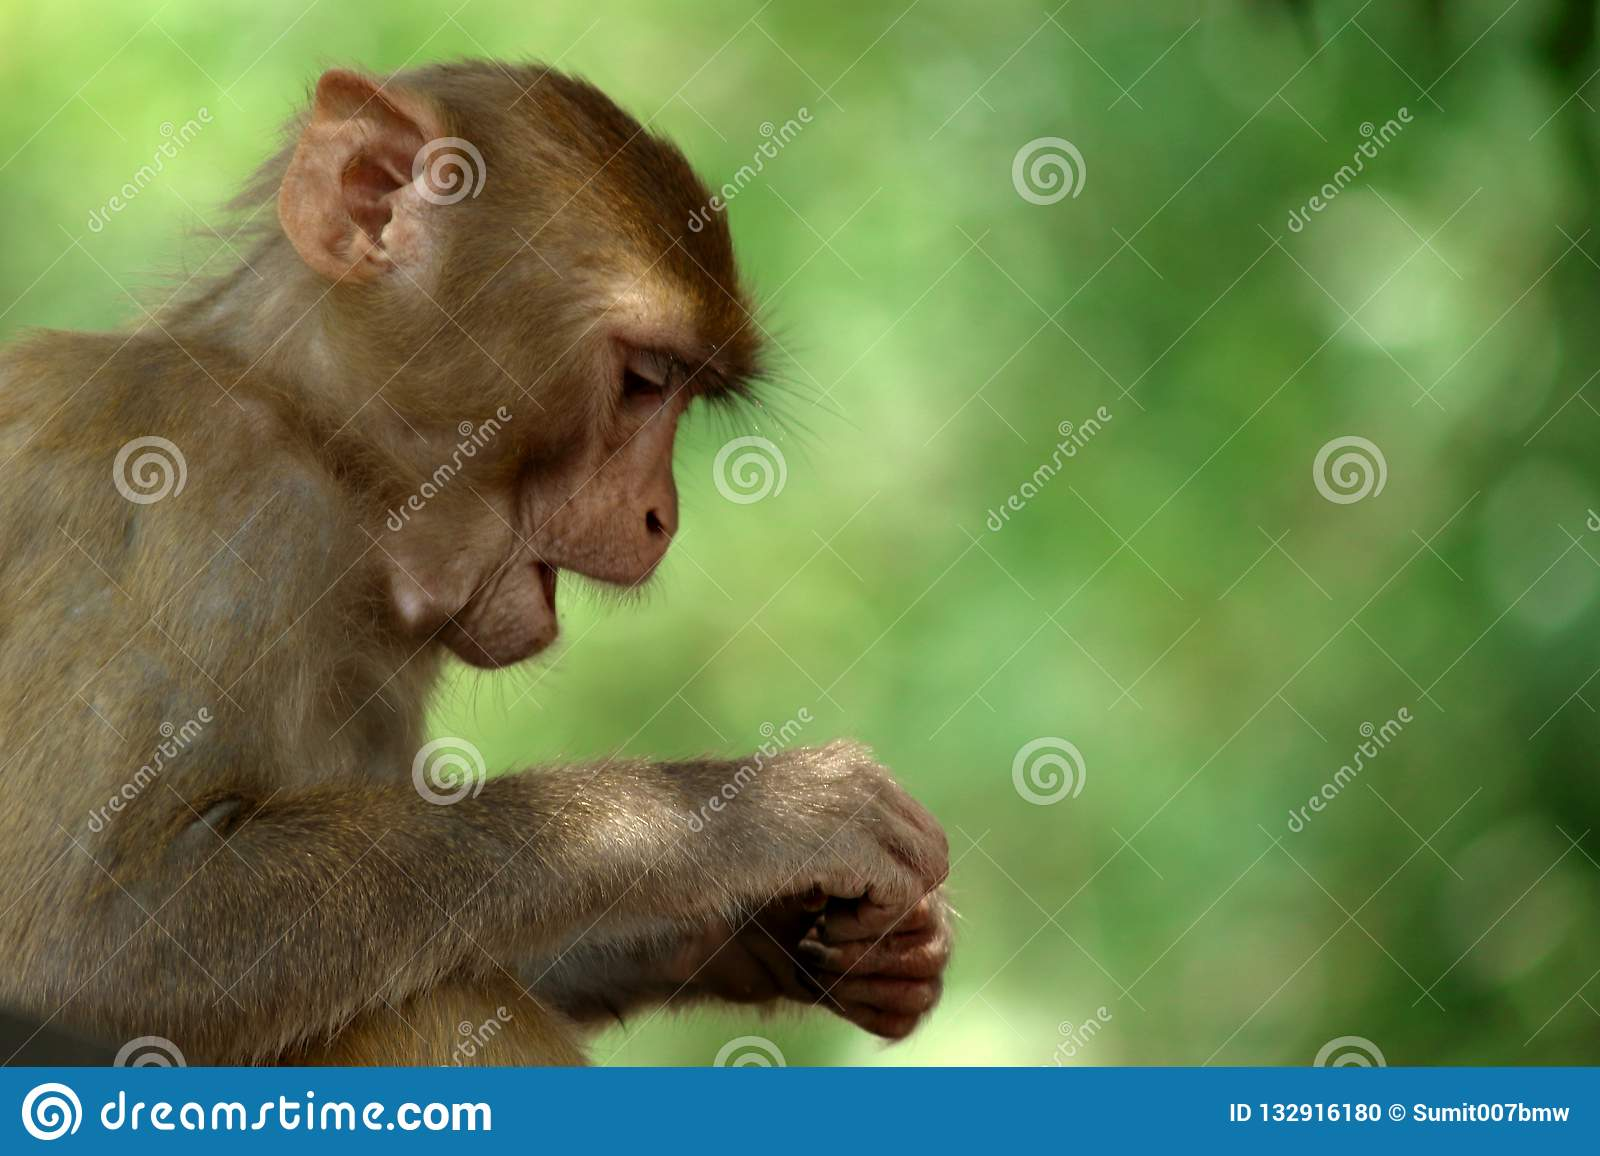 Monkey with a green background.